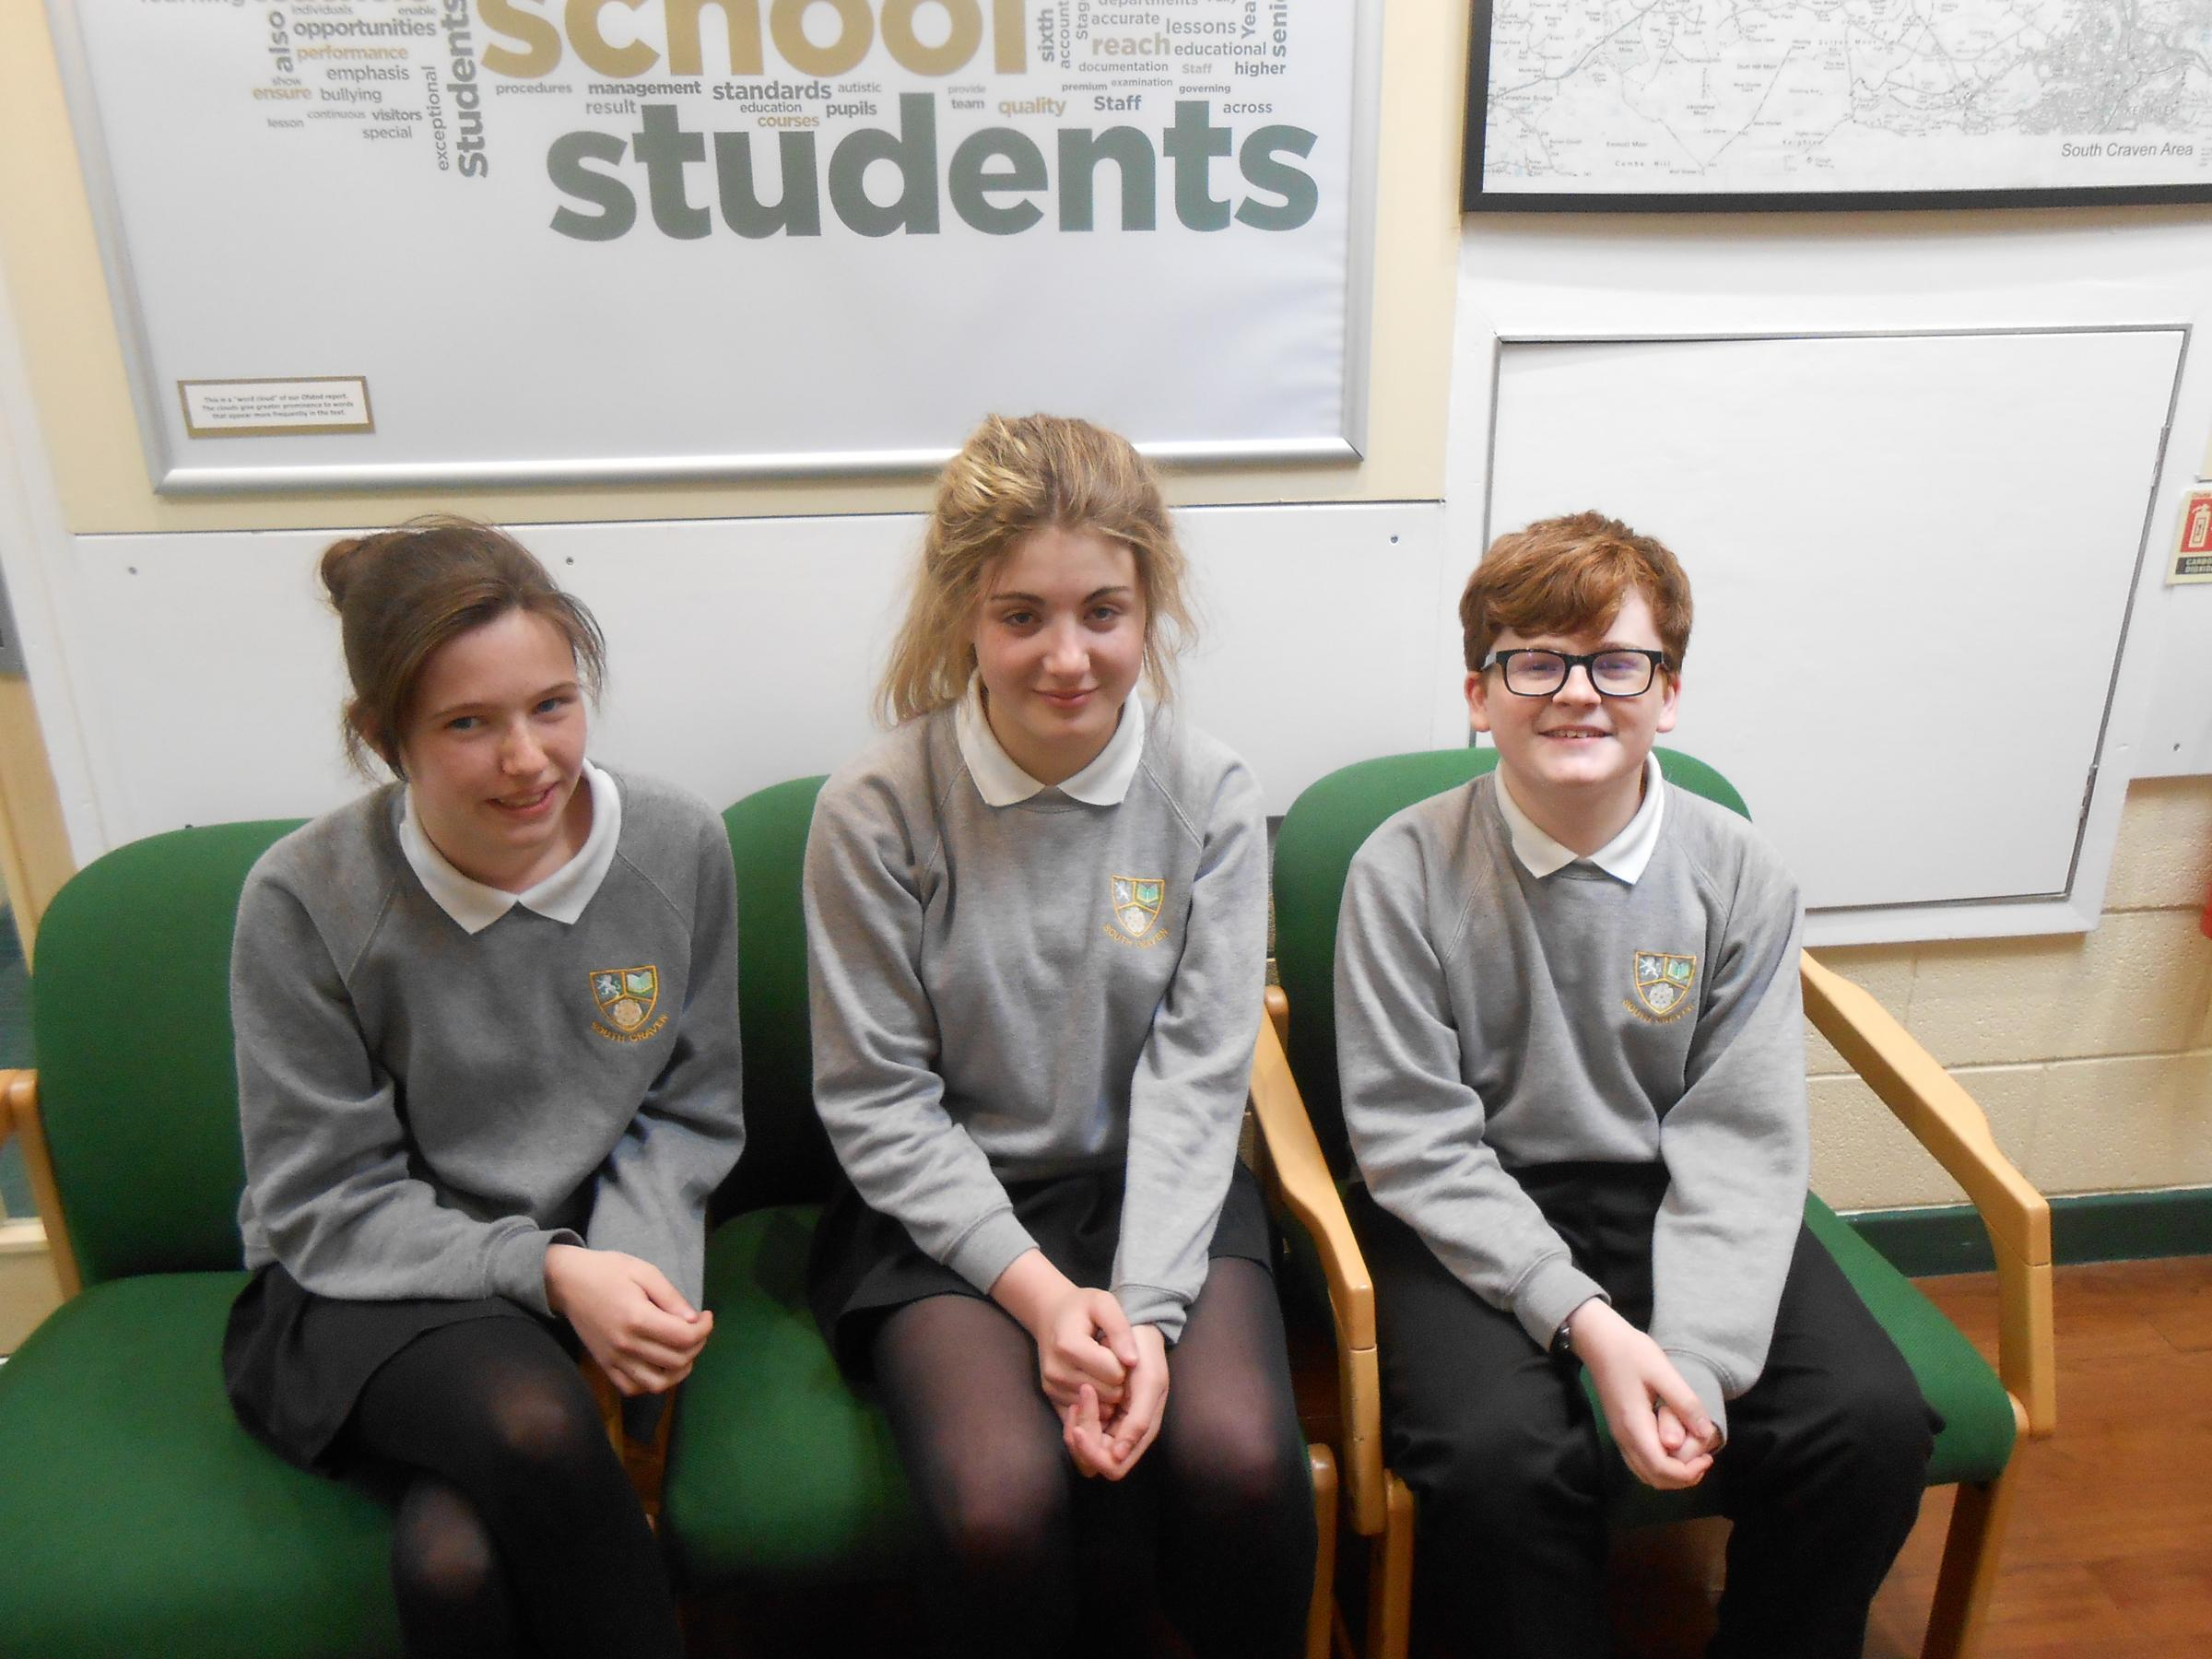 From left, South Craven School Youth Speaks contest competitors Emily Cramby, Matilda Osborne and Sam Burles